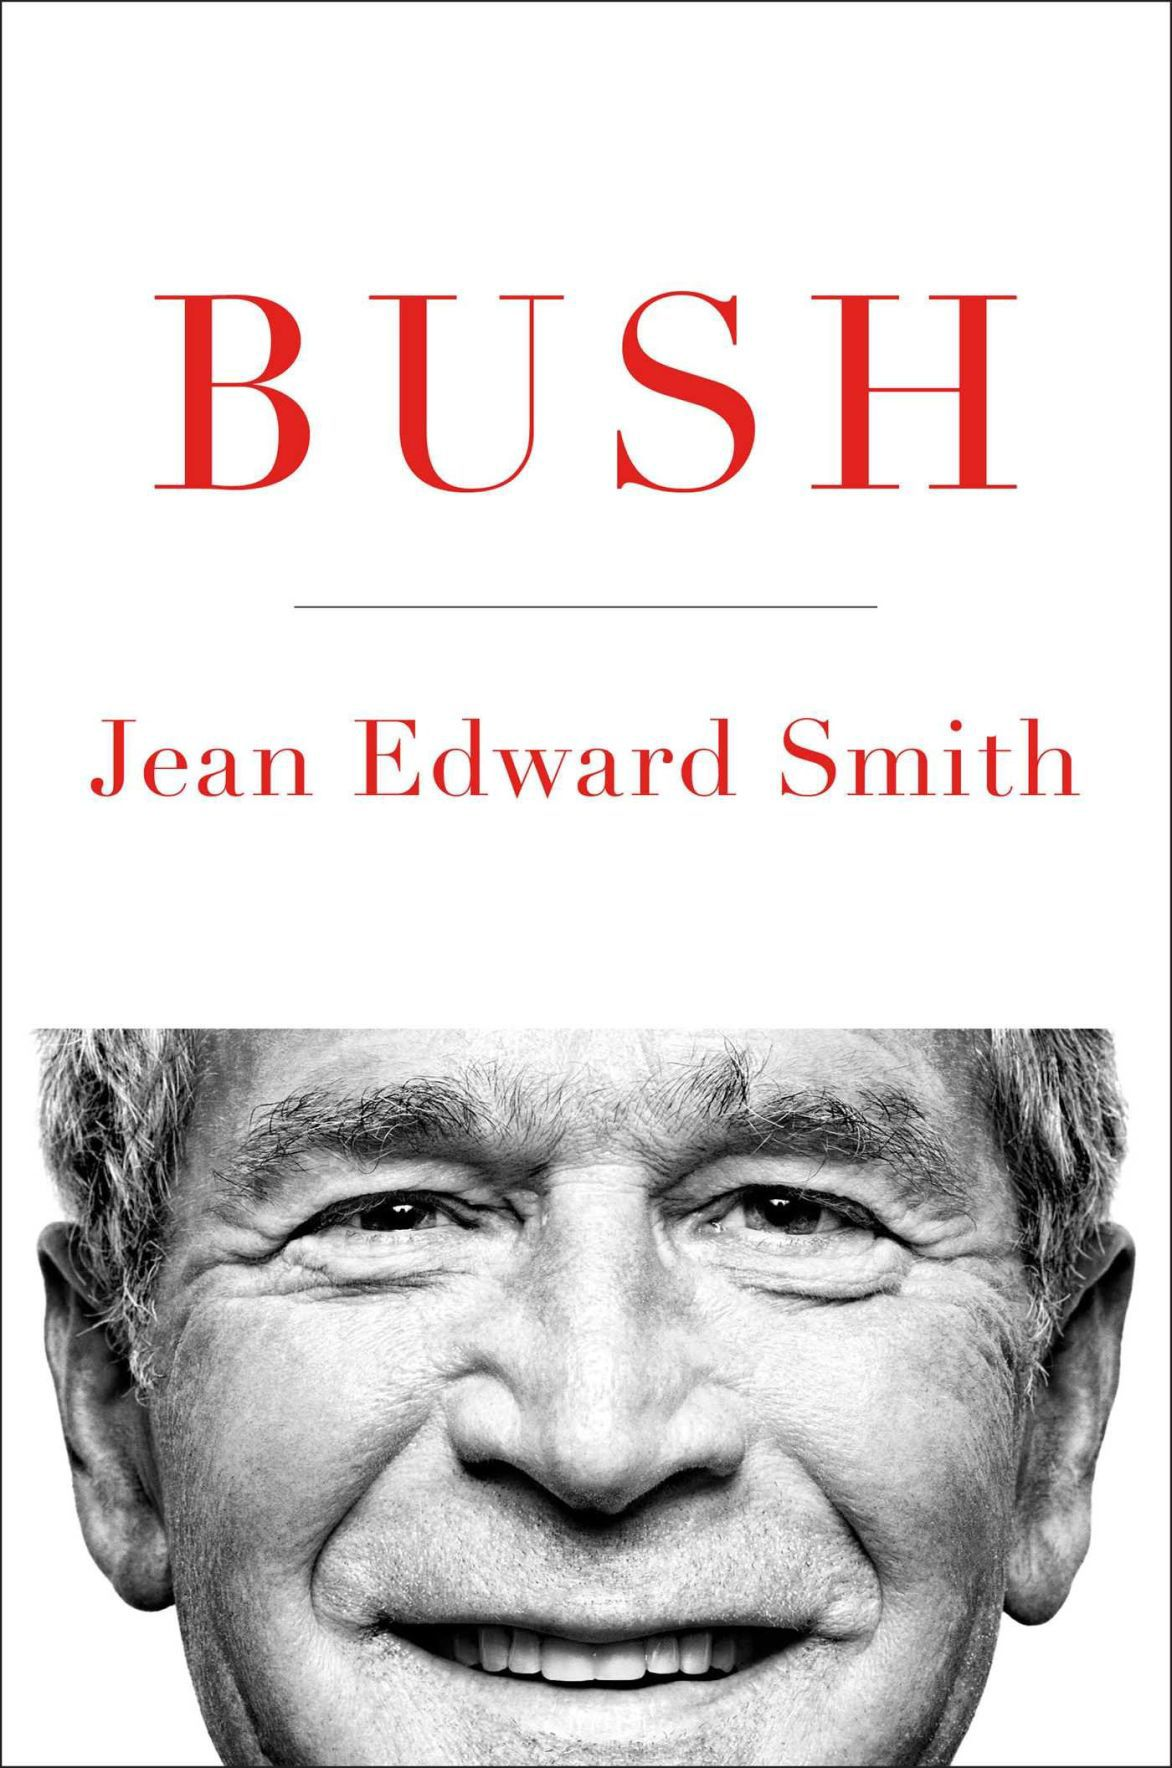 'Bush' by Jean Edward Smith'